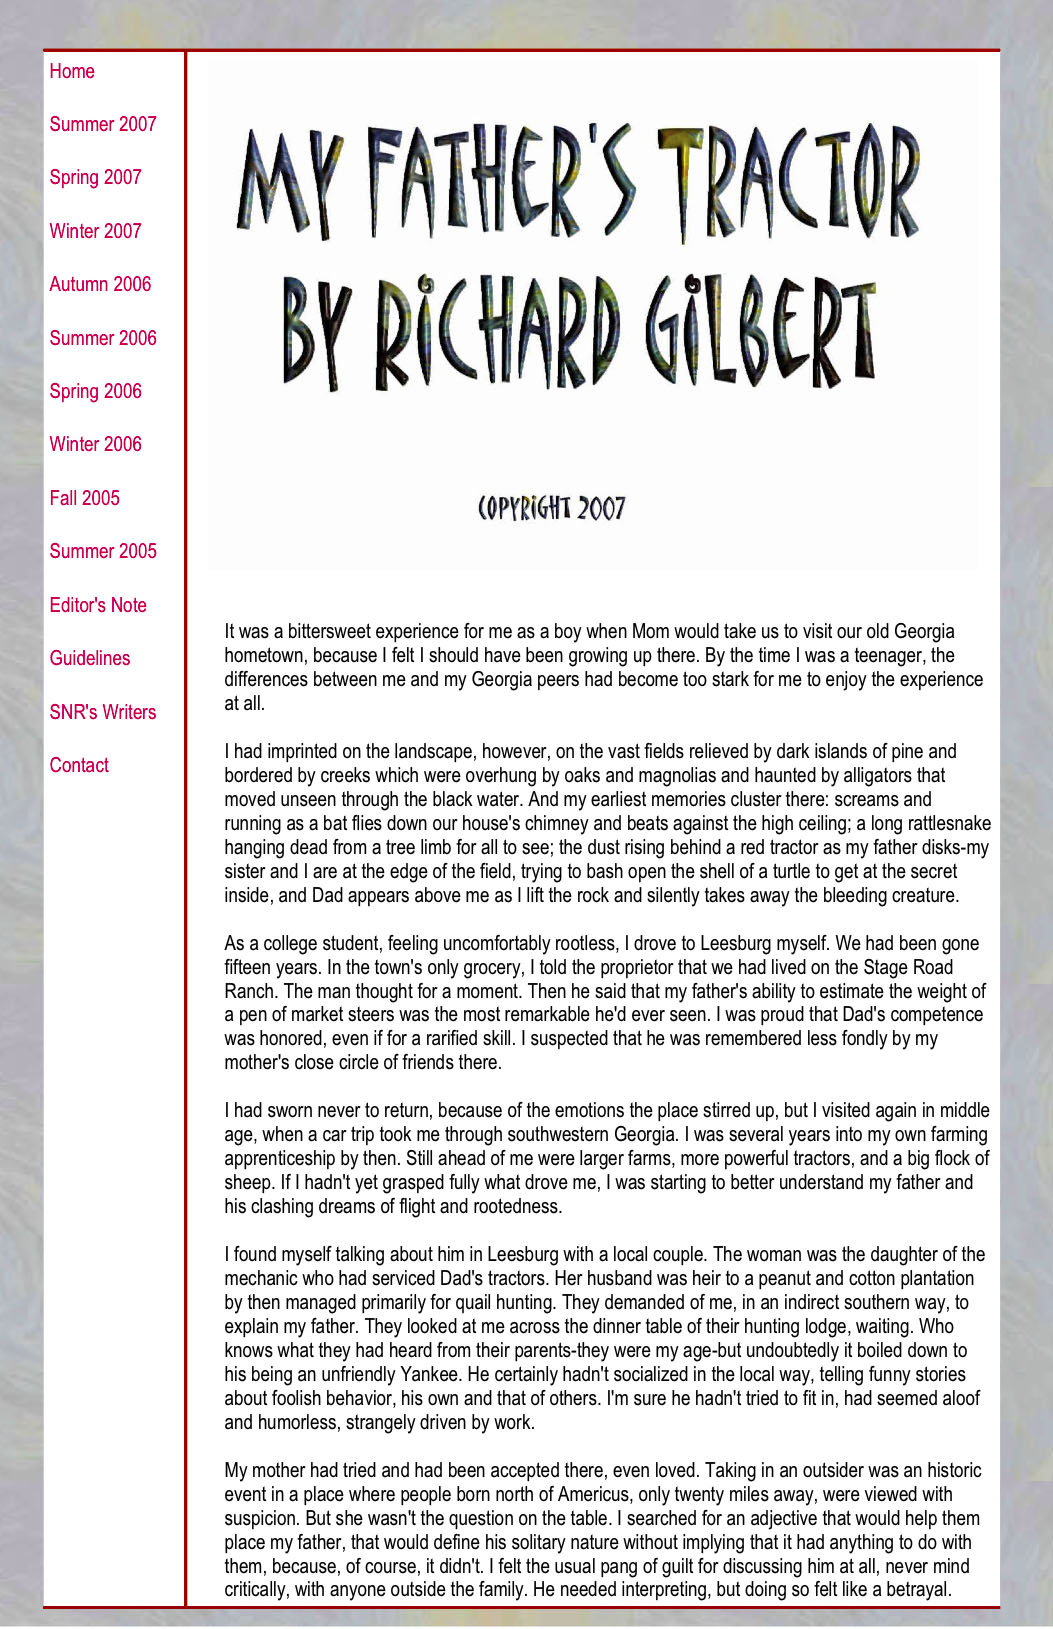 other prose richard gilbertrichard gilbert my father s tractor x when i was growing up in florida mom would take us in the summer to our old hometown as i played children there